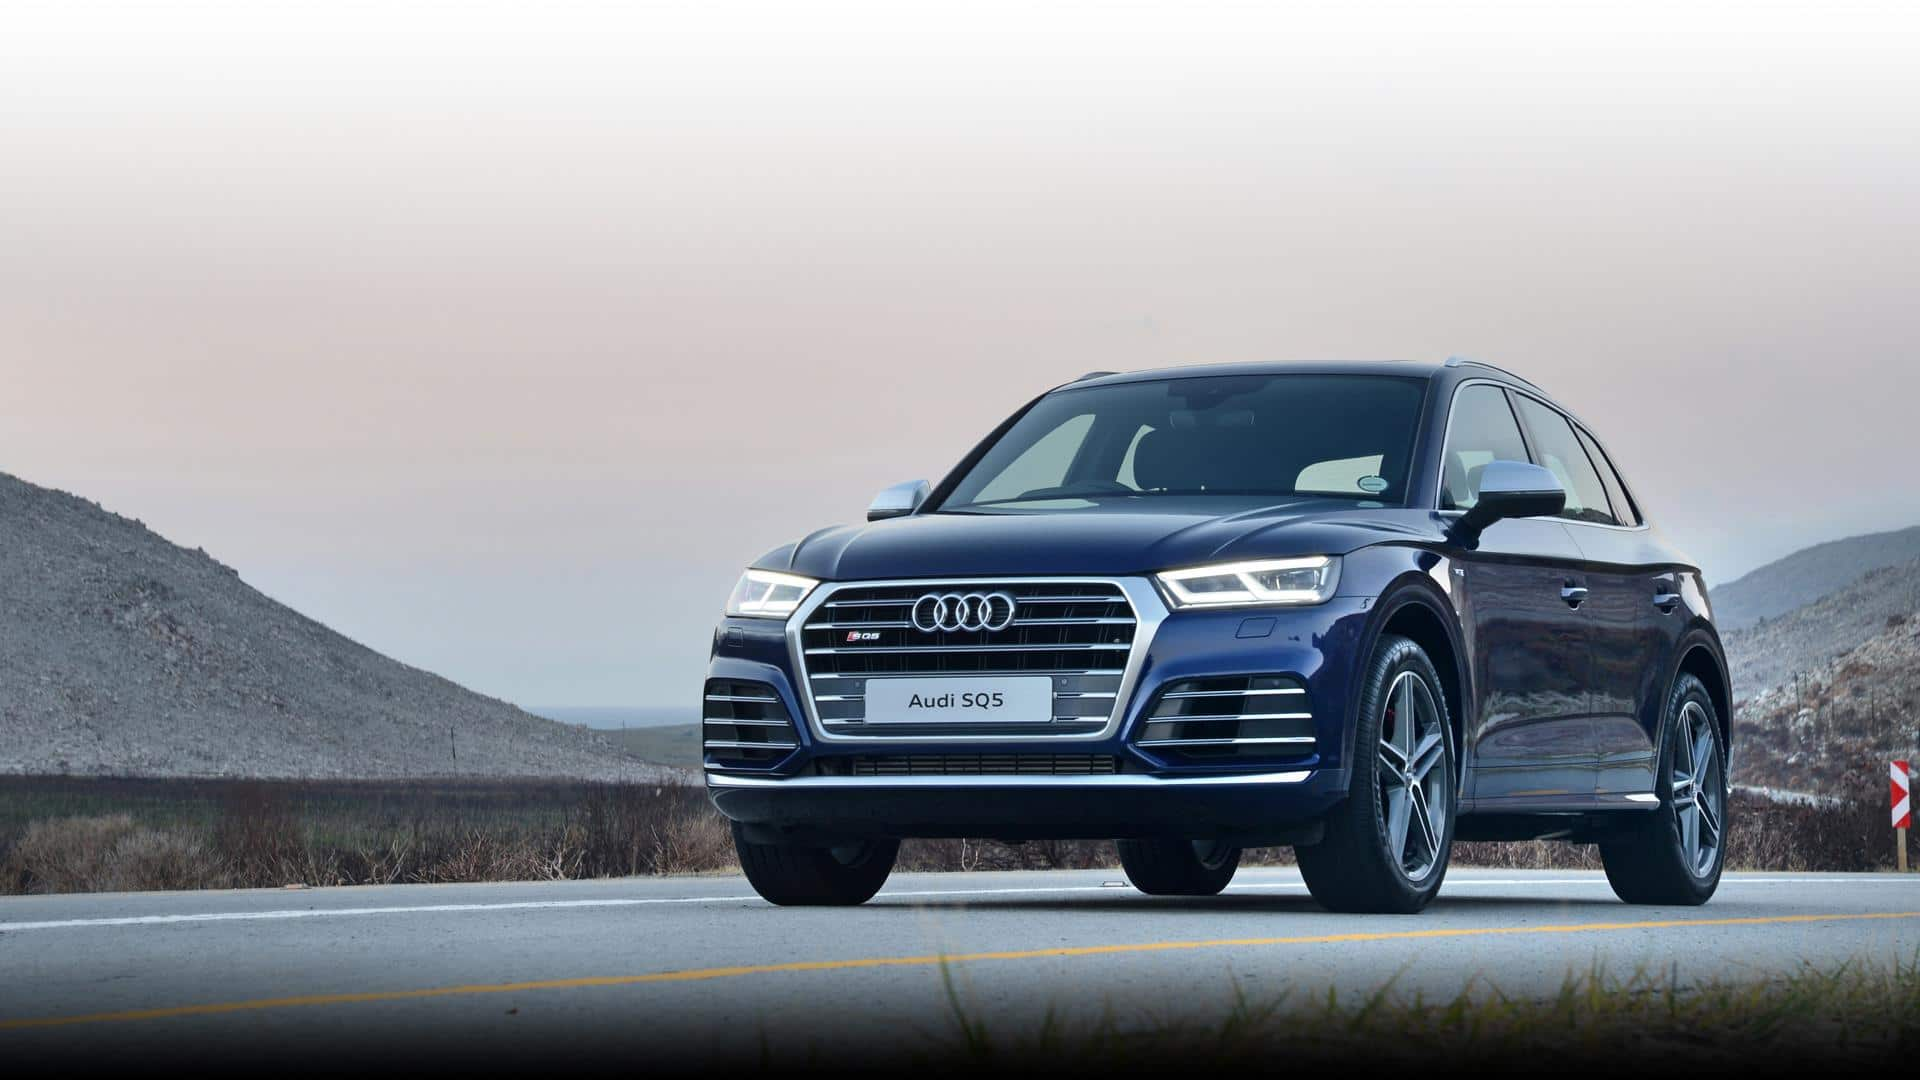 The SQ5